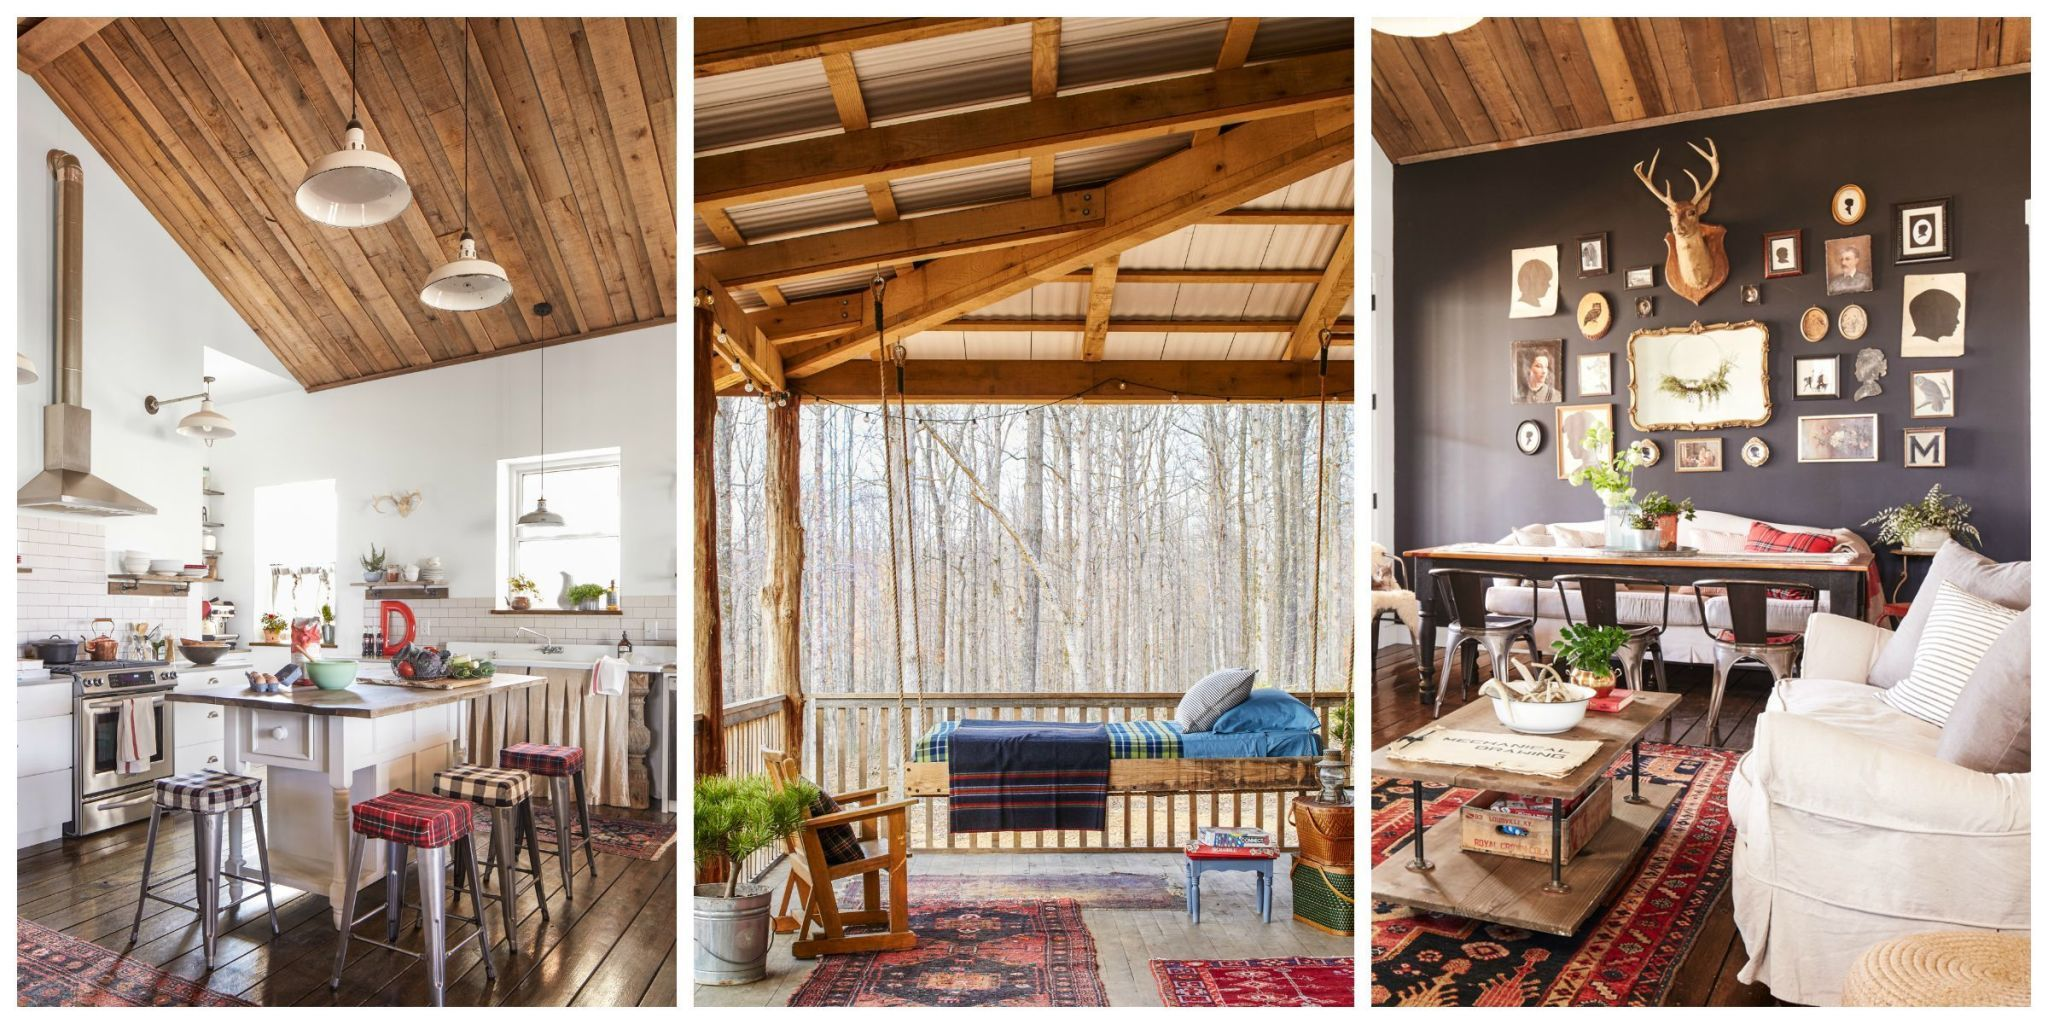 This Leiperu0027s Fork, Tennessee, Home Is Bursting At The Beams With Ingenious  Ideas For All Things Rustic, Reclaimed, And Repurposed. Consider It The  Ultimate ...